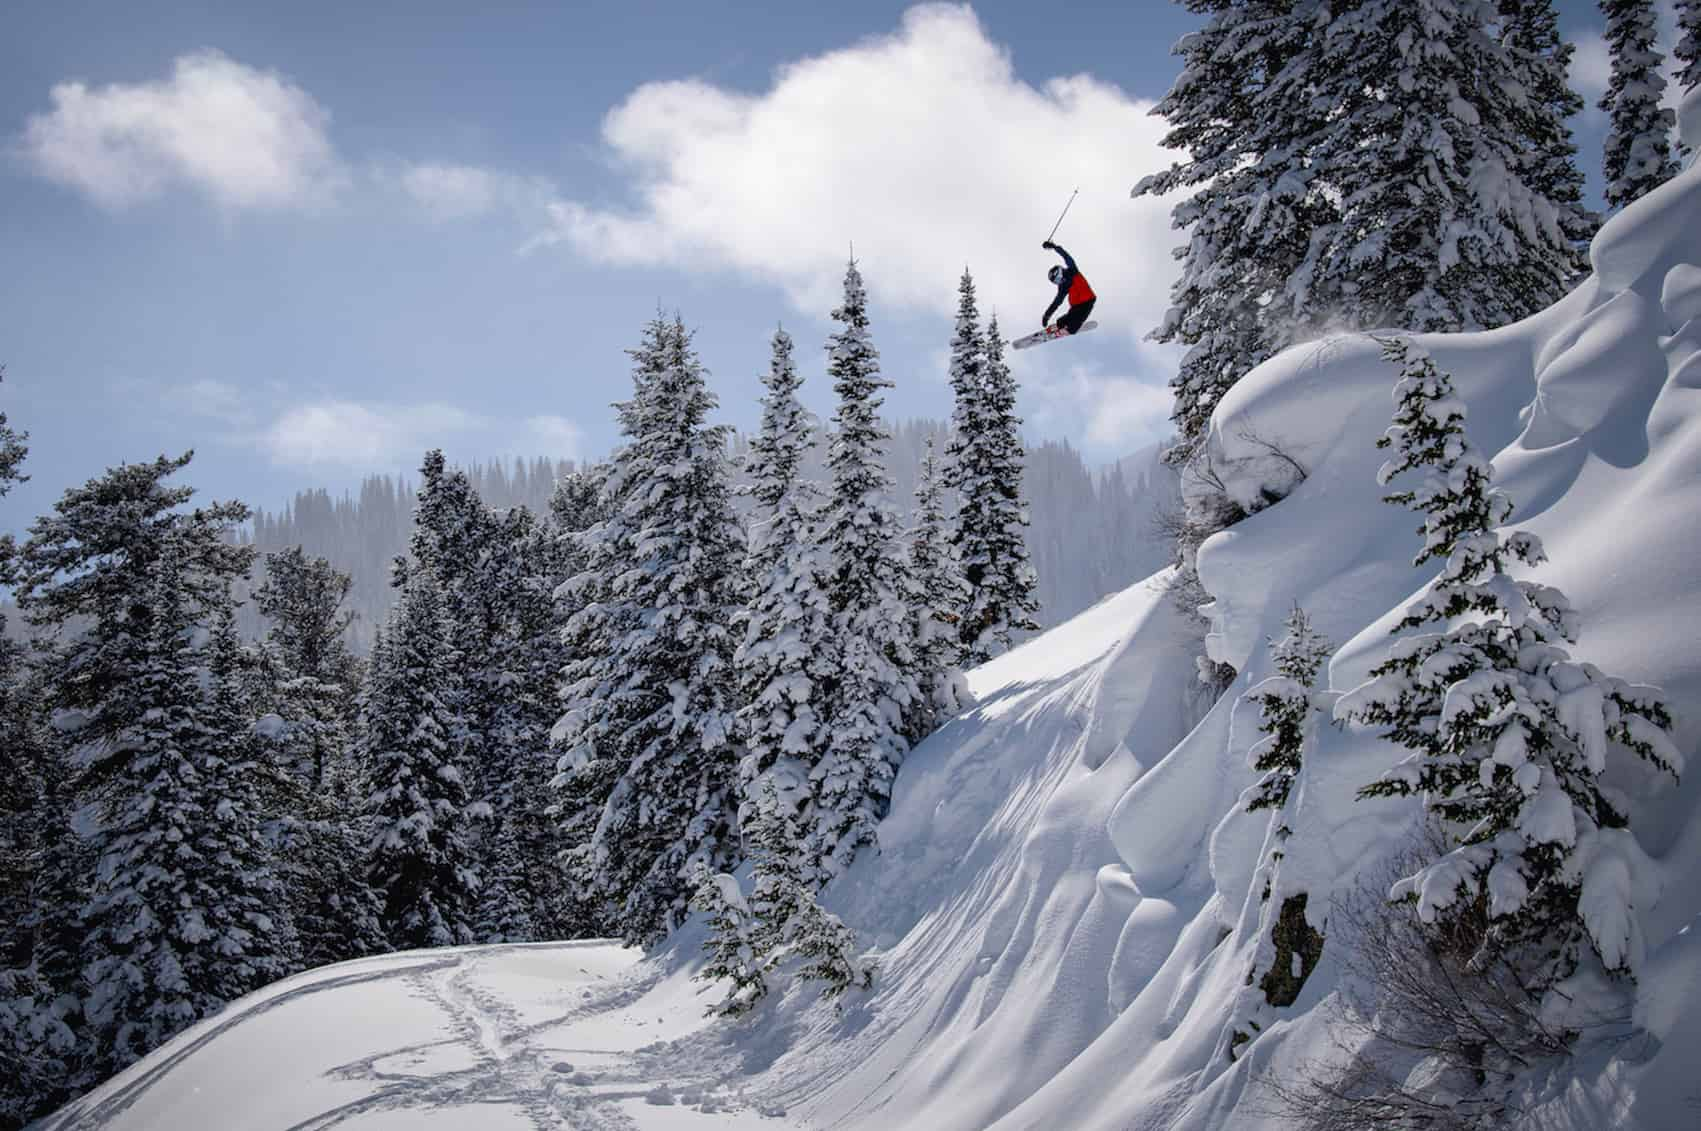 12 Year Old Kai Jones Takes His Skiing to Another Level In TGR's Winterland